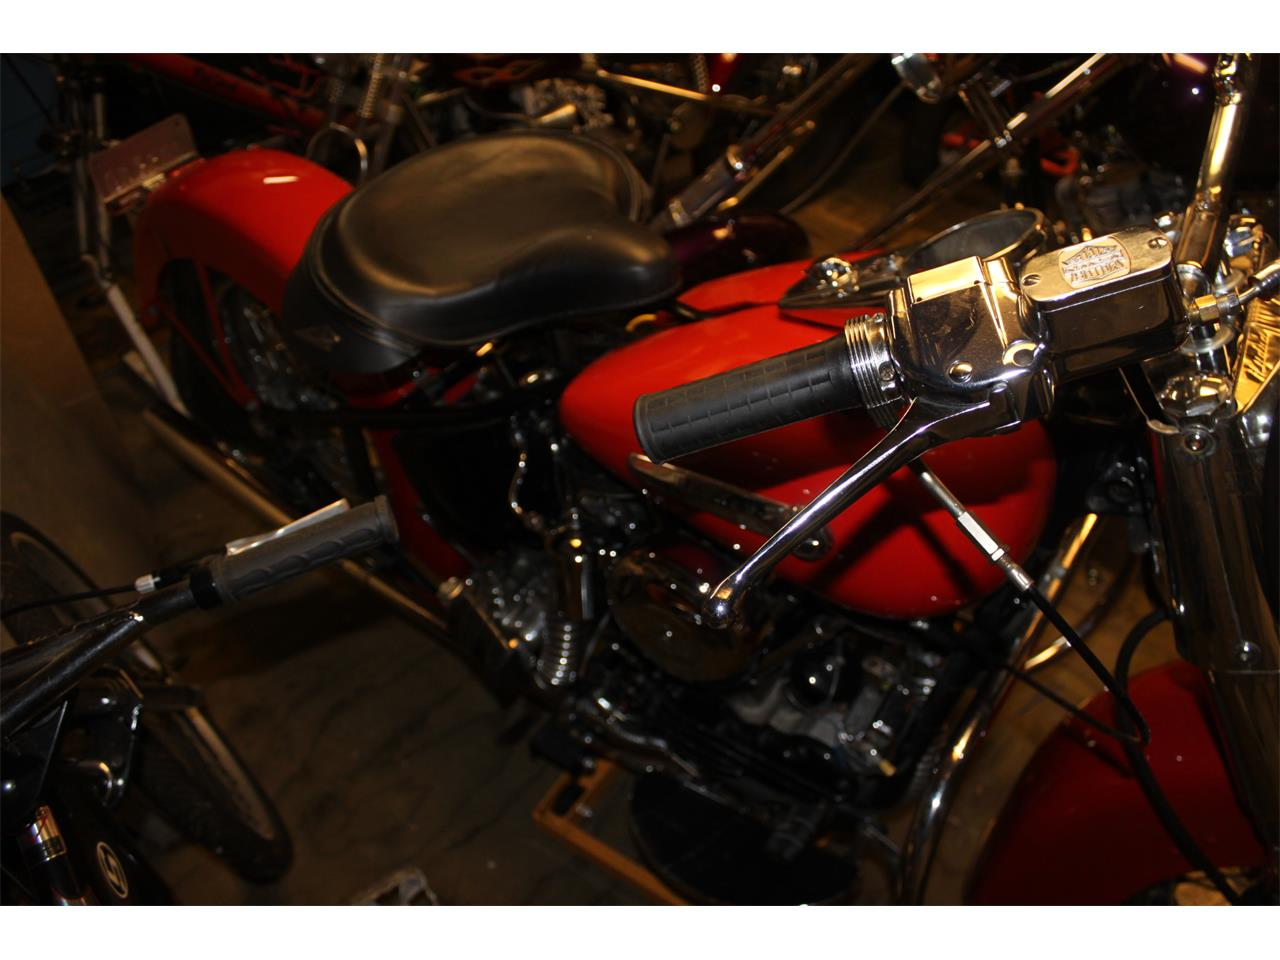 1950 Harley-Davidson Motorcycle for sale in Carnation, WA – photo 13